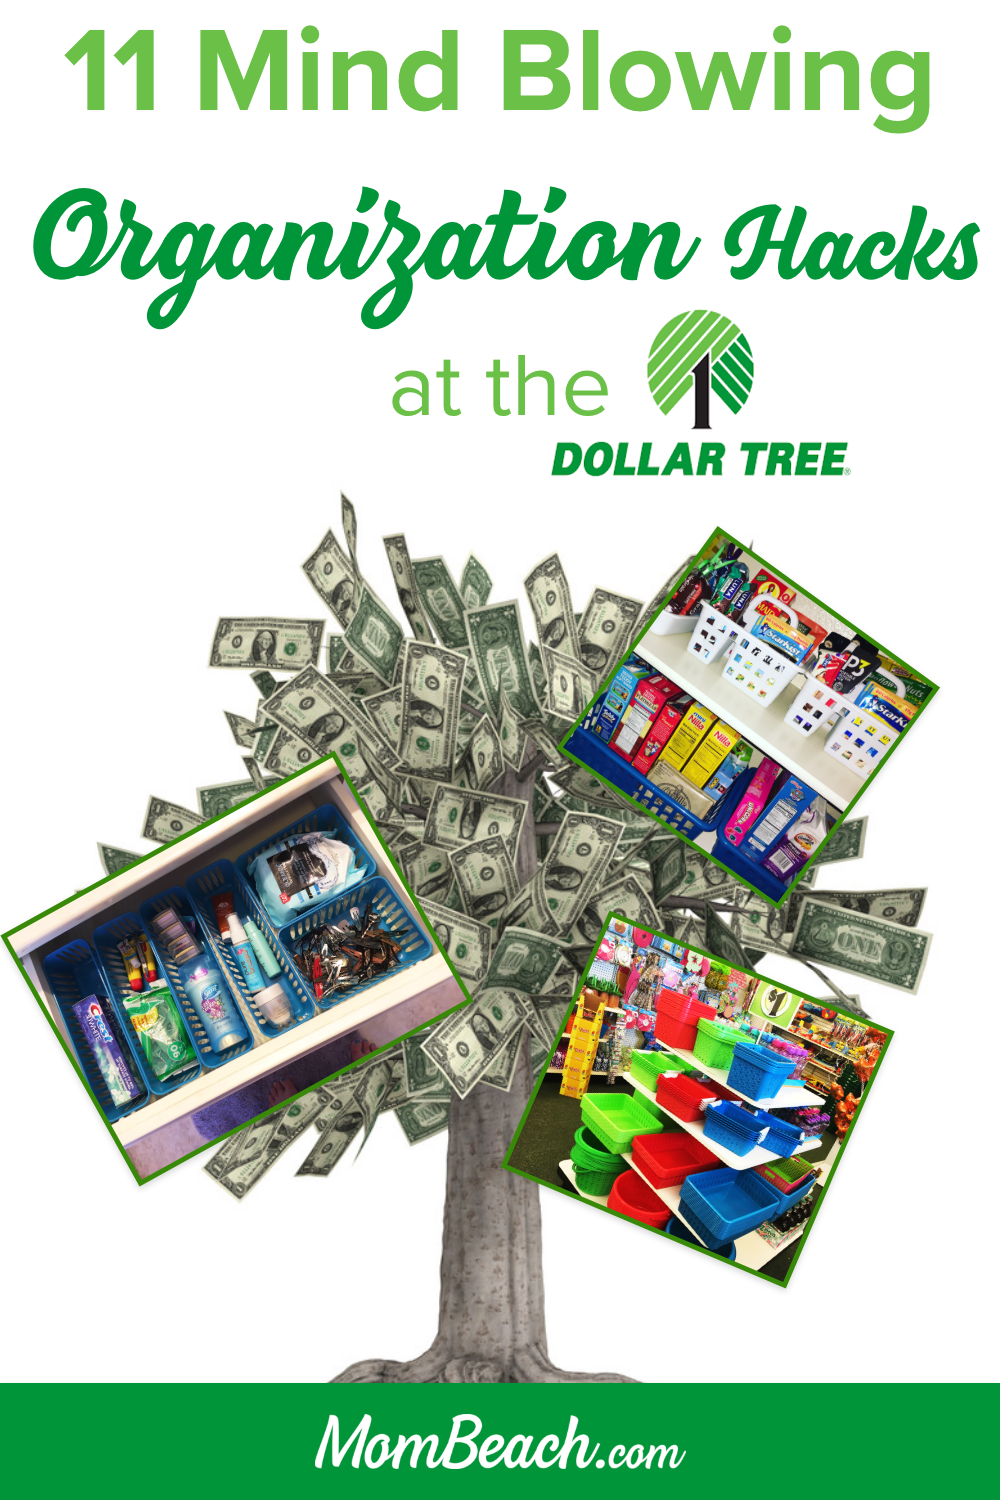 These Dollar Tree organization hacks and ideas are perfect for the kitchen, bathroom, bedroom, closet, pantry, kids are more! This is a 100% original content post. Get your home organized and save money today with containers from the dollar store. #dollartreeorganization #dollartreeorganizationideas #organizationideas #kitchenorganization #bathroomorganization #bedroomorganization #closetorganization #pantryorganization